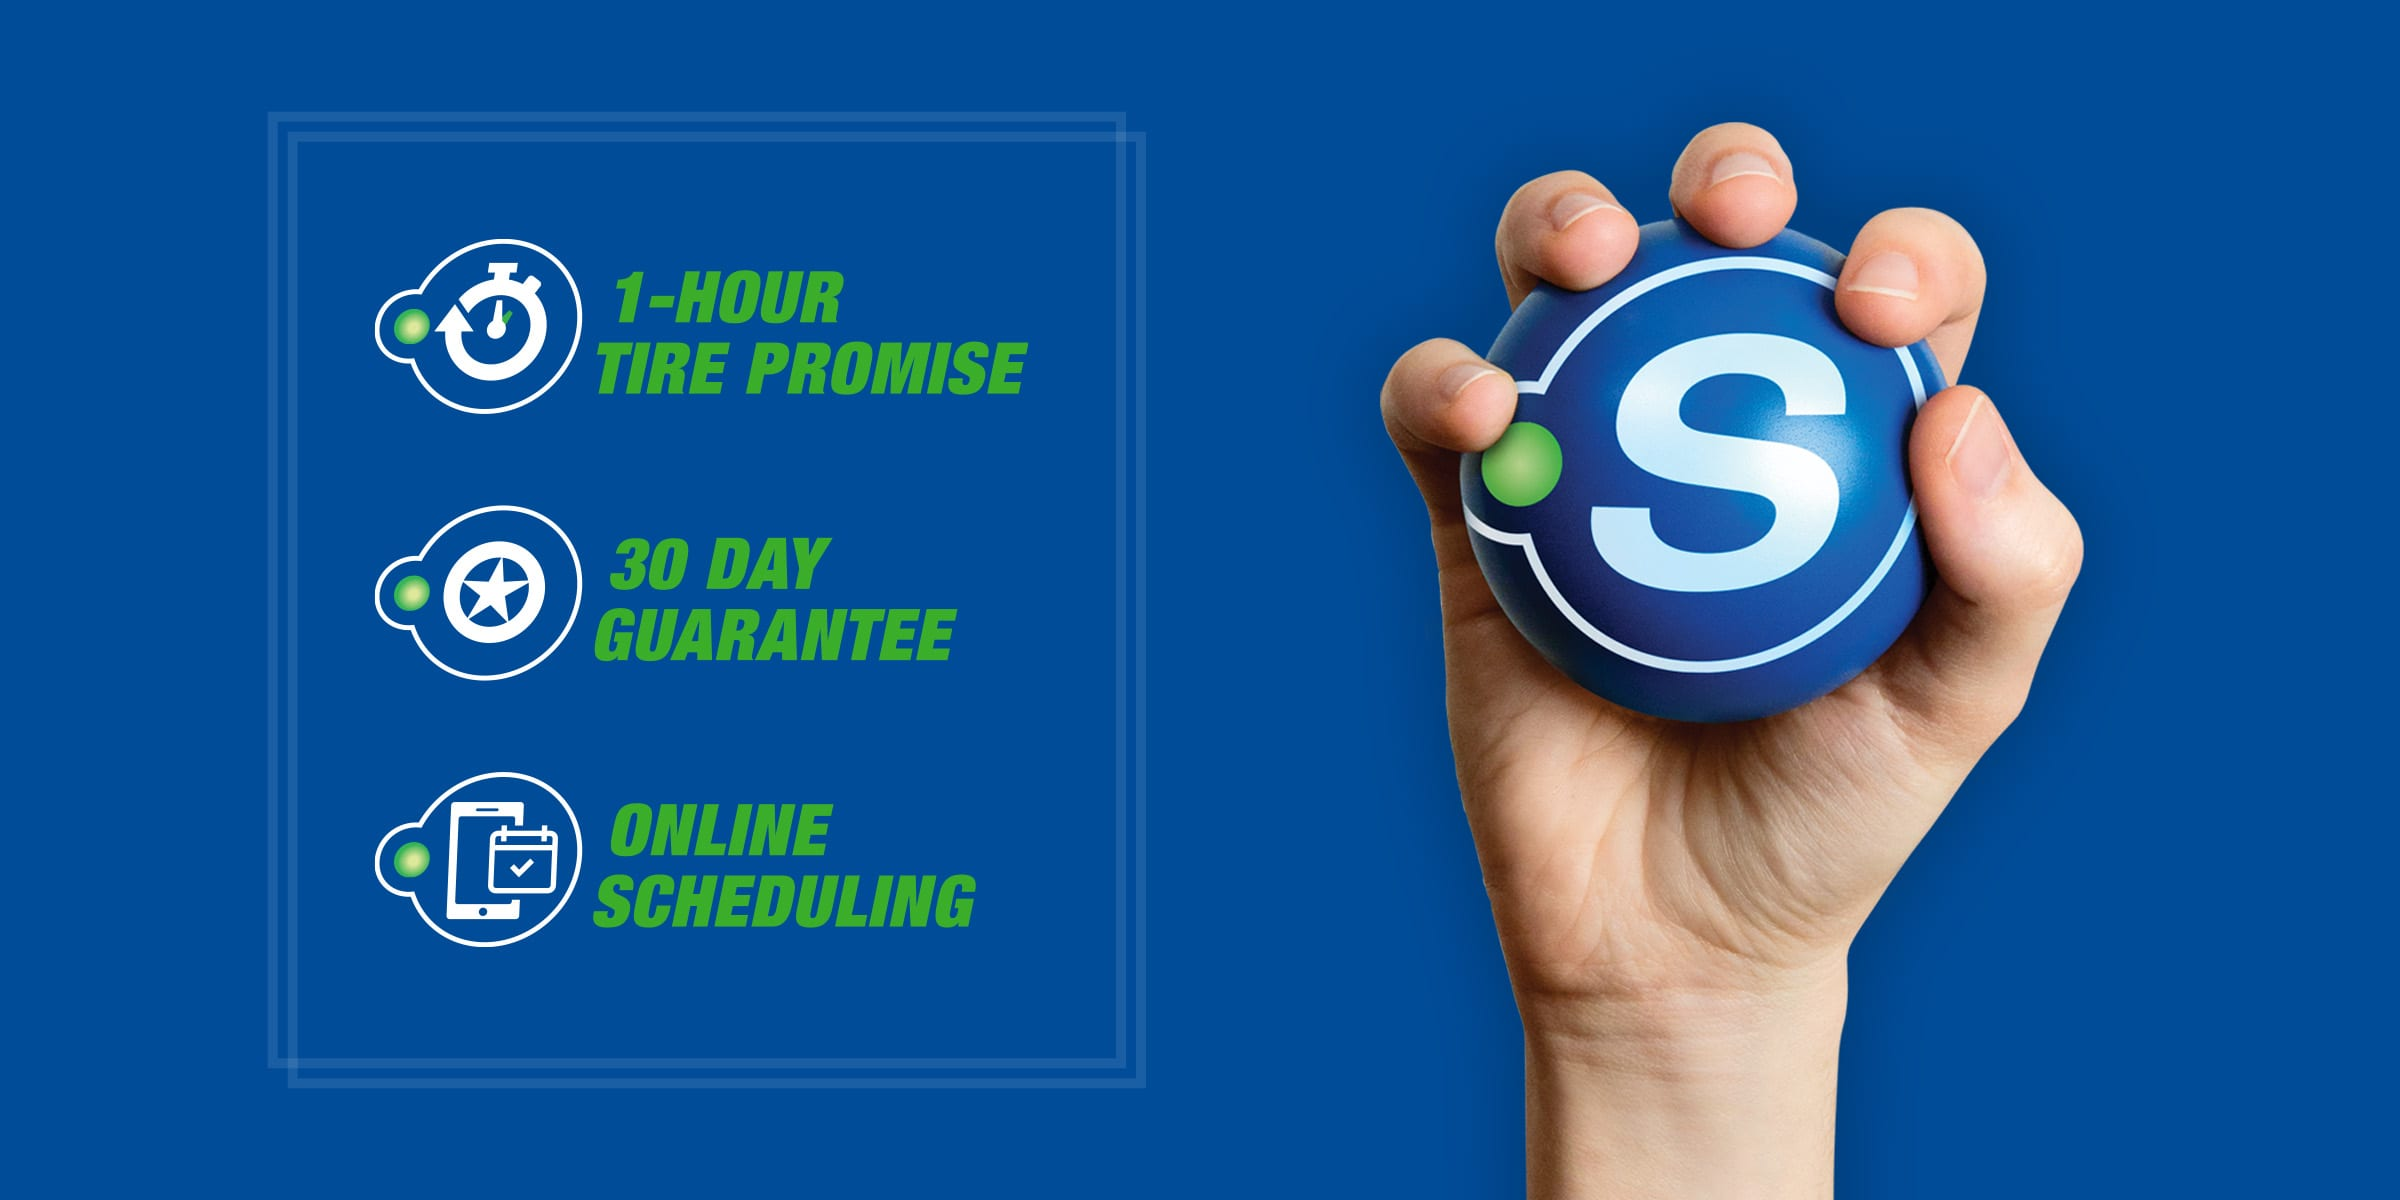 MBT-Website_Work_Point-S-No-Stress-Campaign_C-Icons